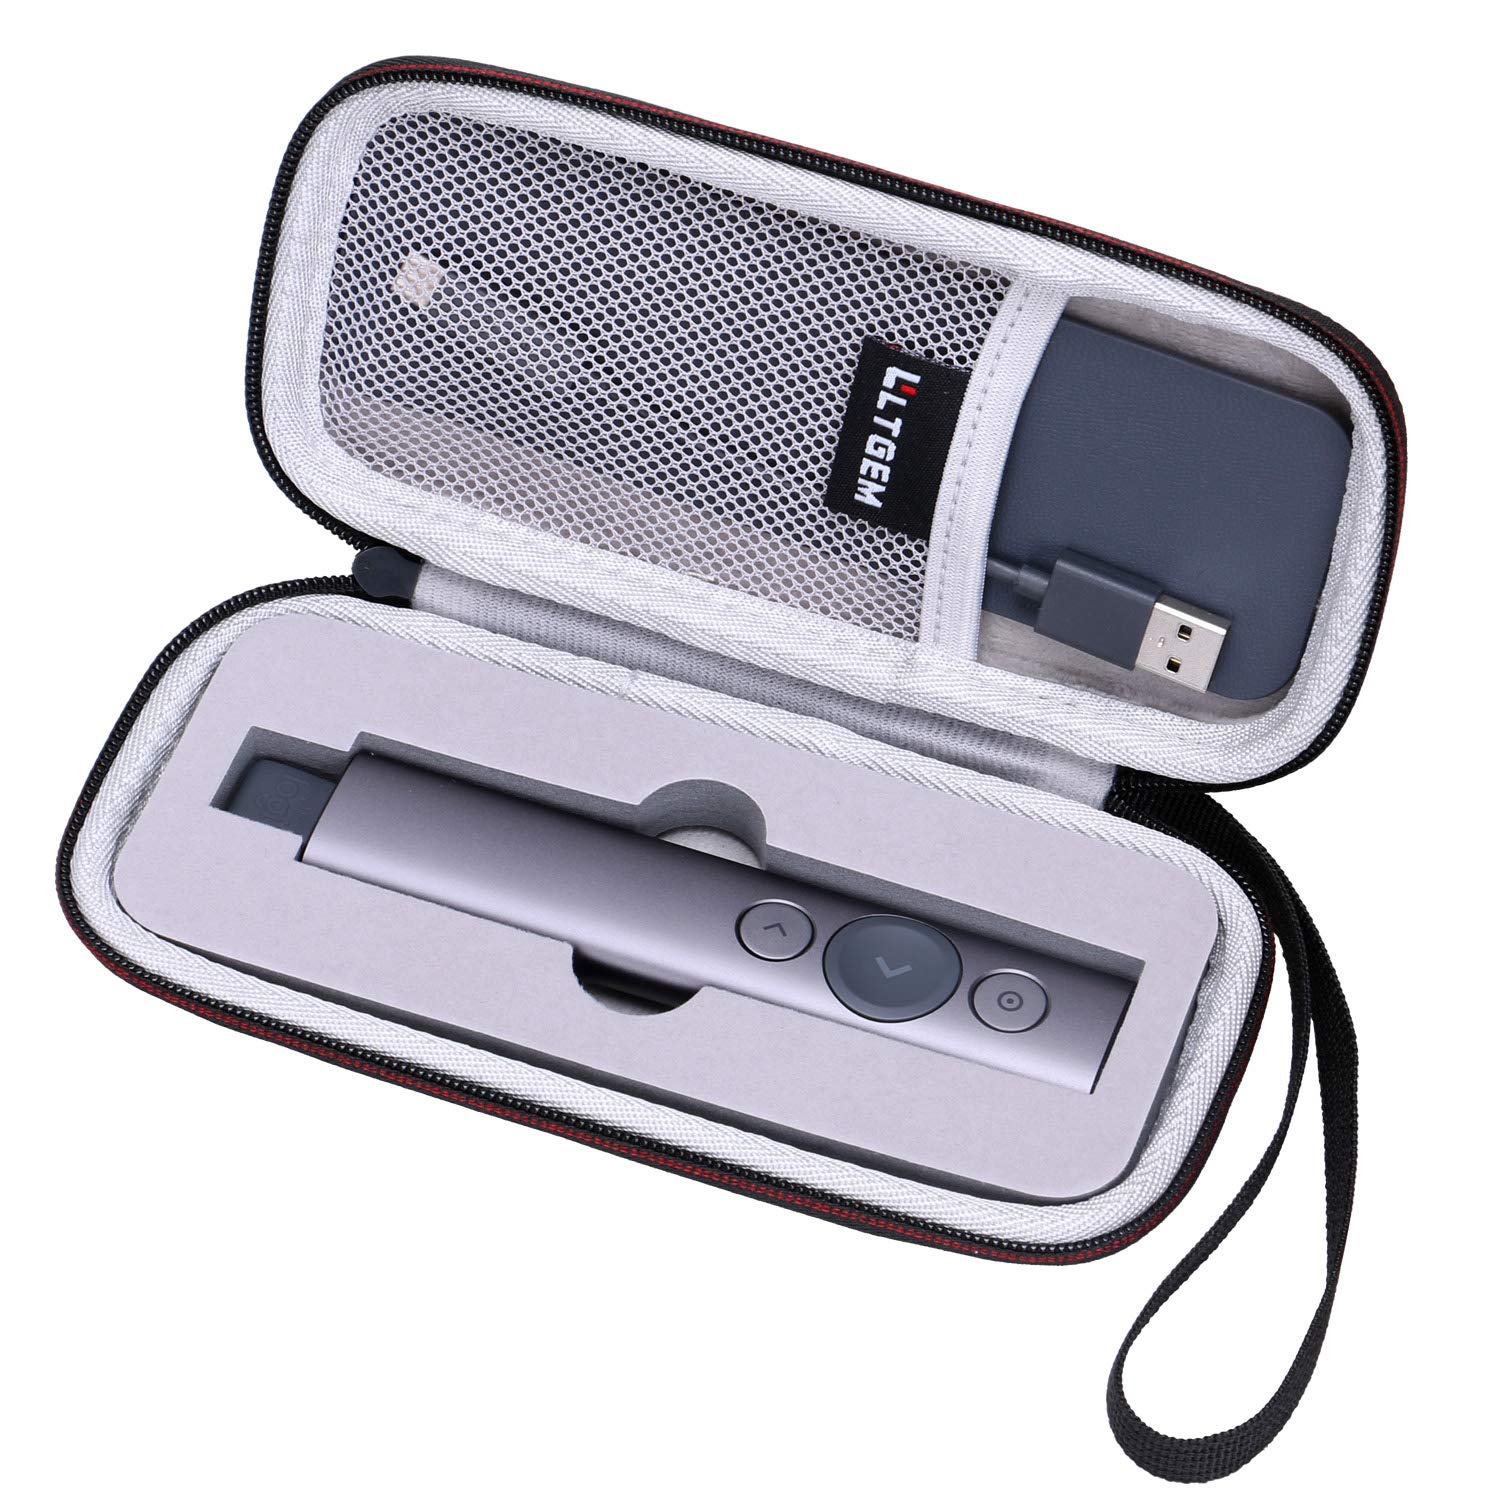 LTGEM Hard Travel Carrying Case for Logitech Spotlight Bluetooth Presentation Remote